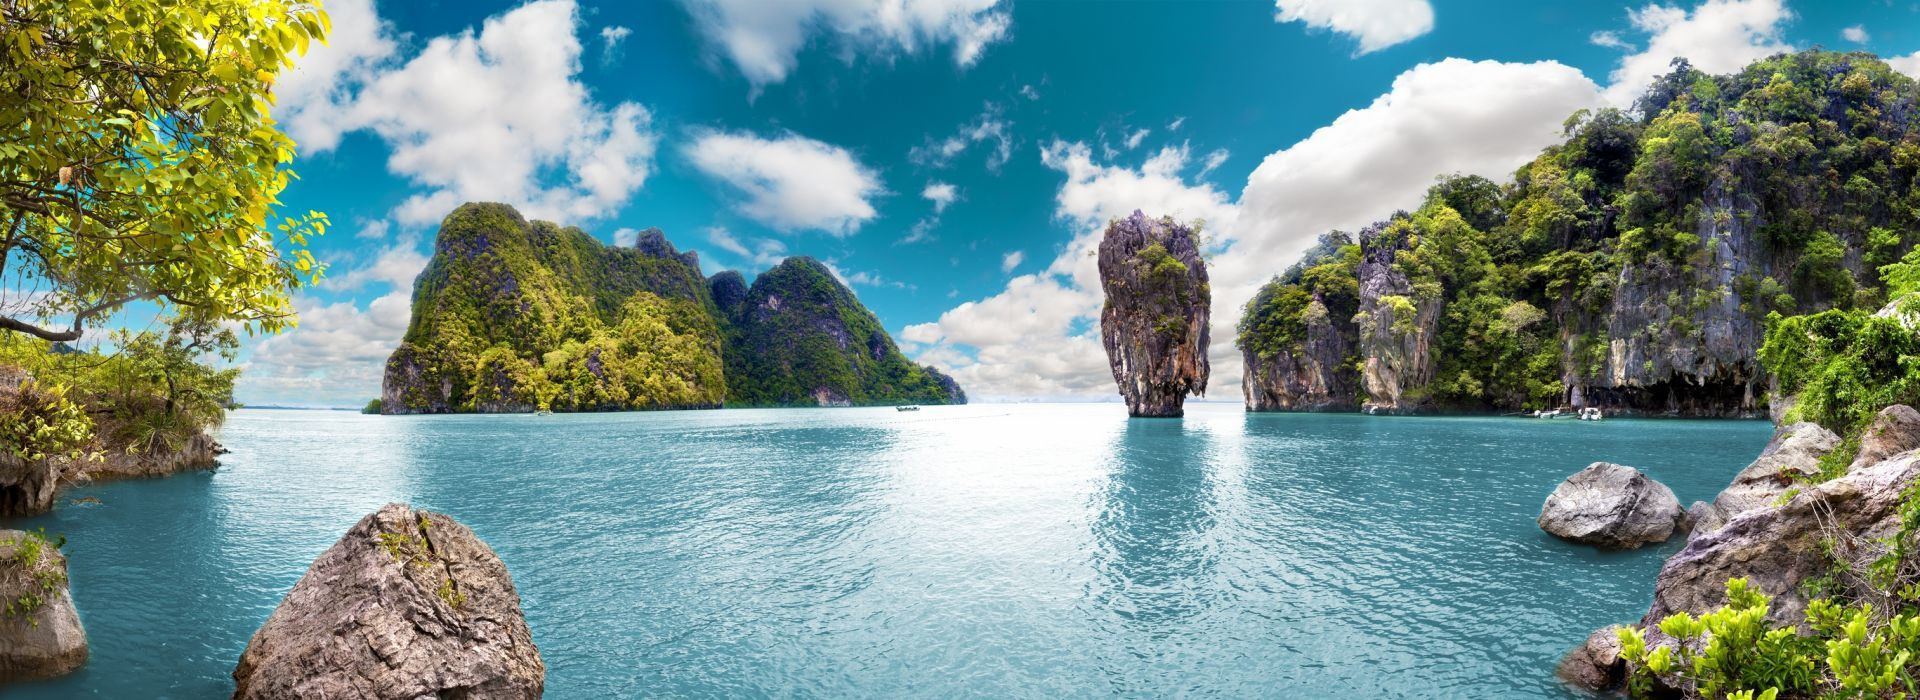 Local boat rides Tours in Phuket